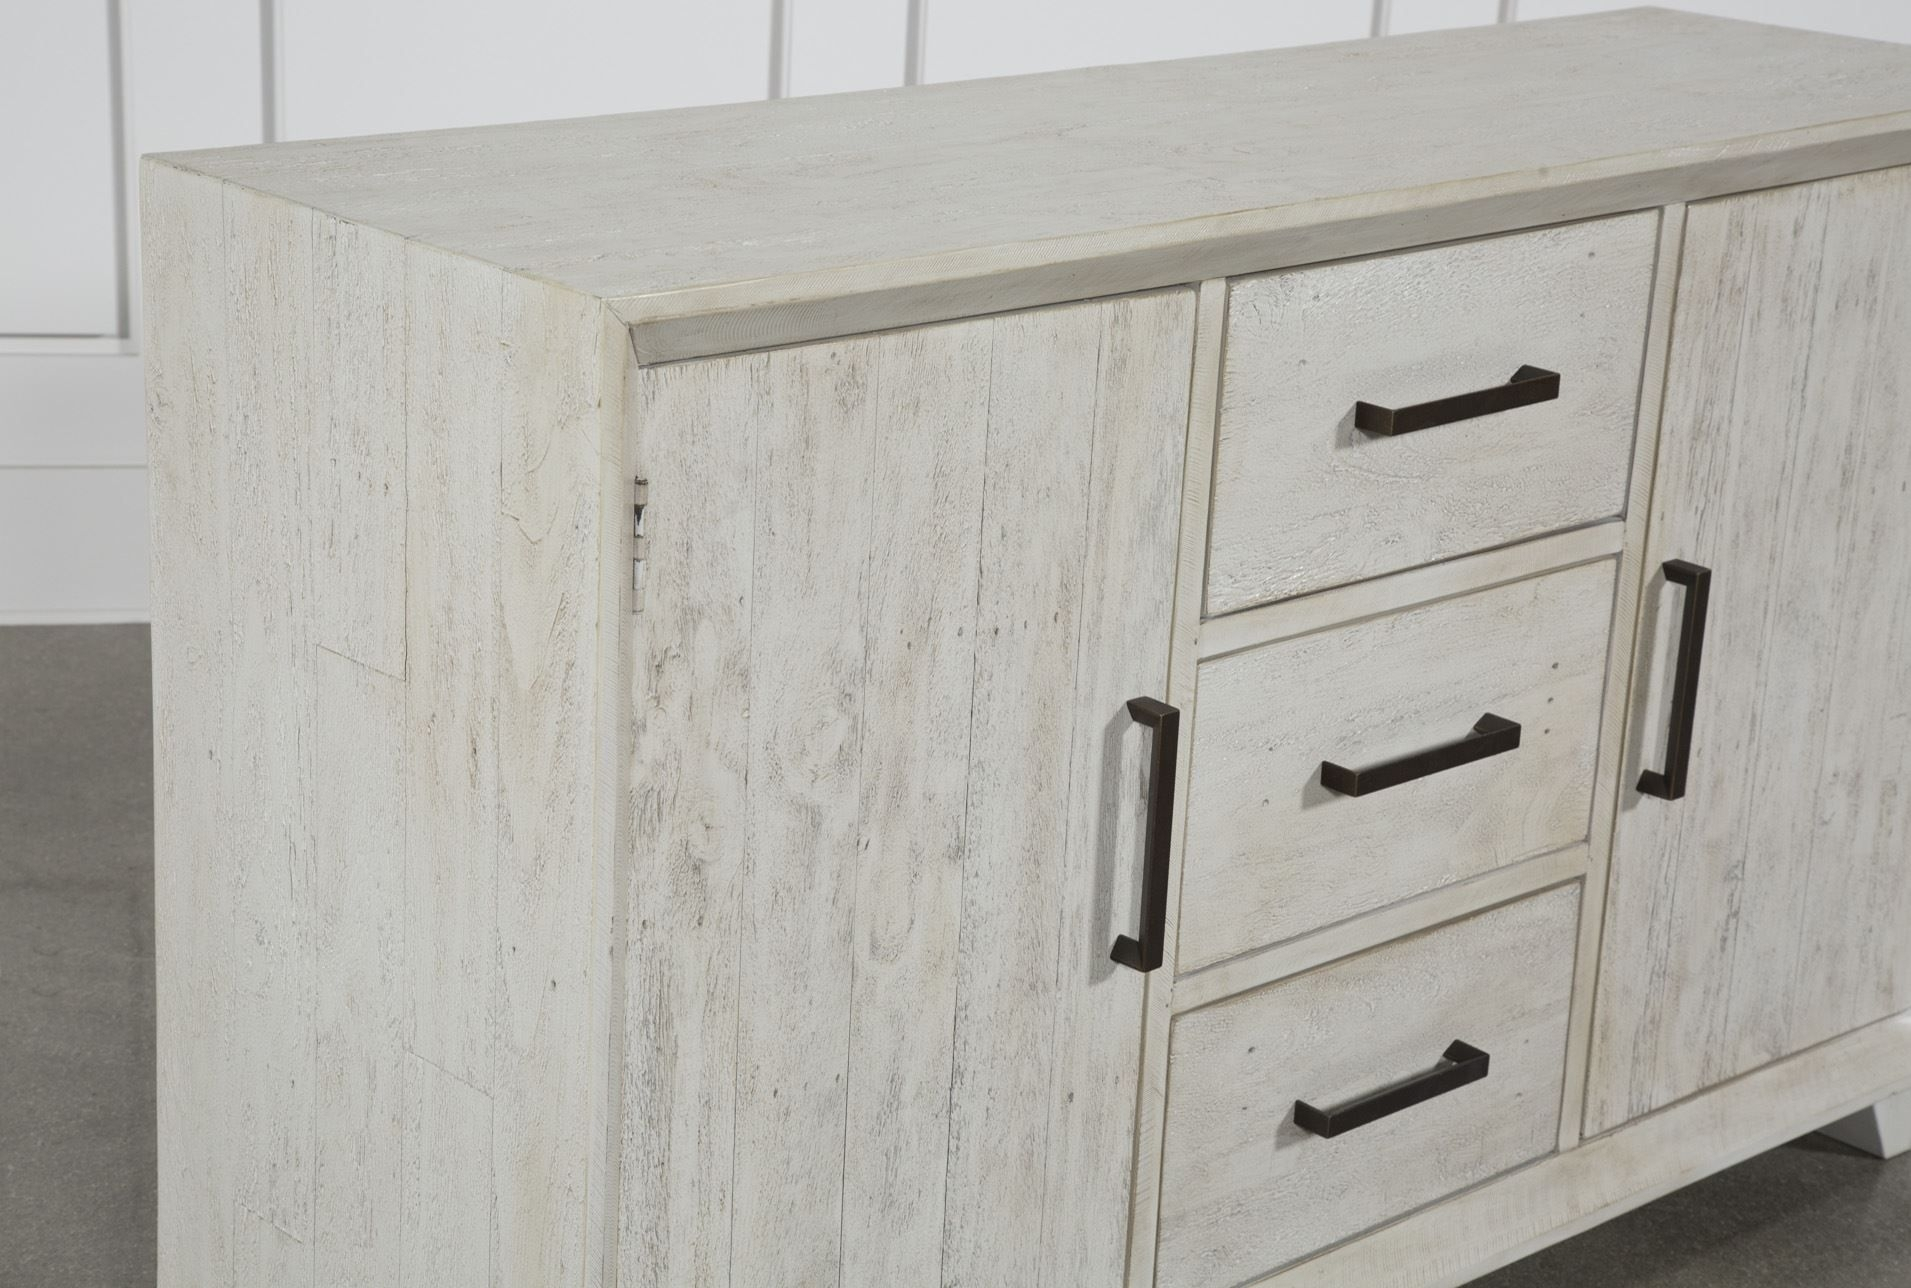 Otb Antique White Distressed 3-Drawer/2-Door Sideboard   Drawers in Antique Walnut Finish 2-Door/4-Drawer Sideboards (Image 20 of 30)